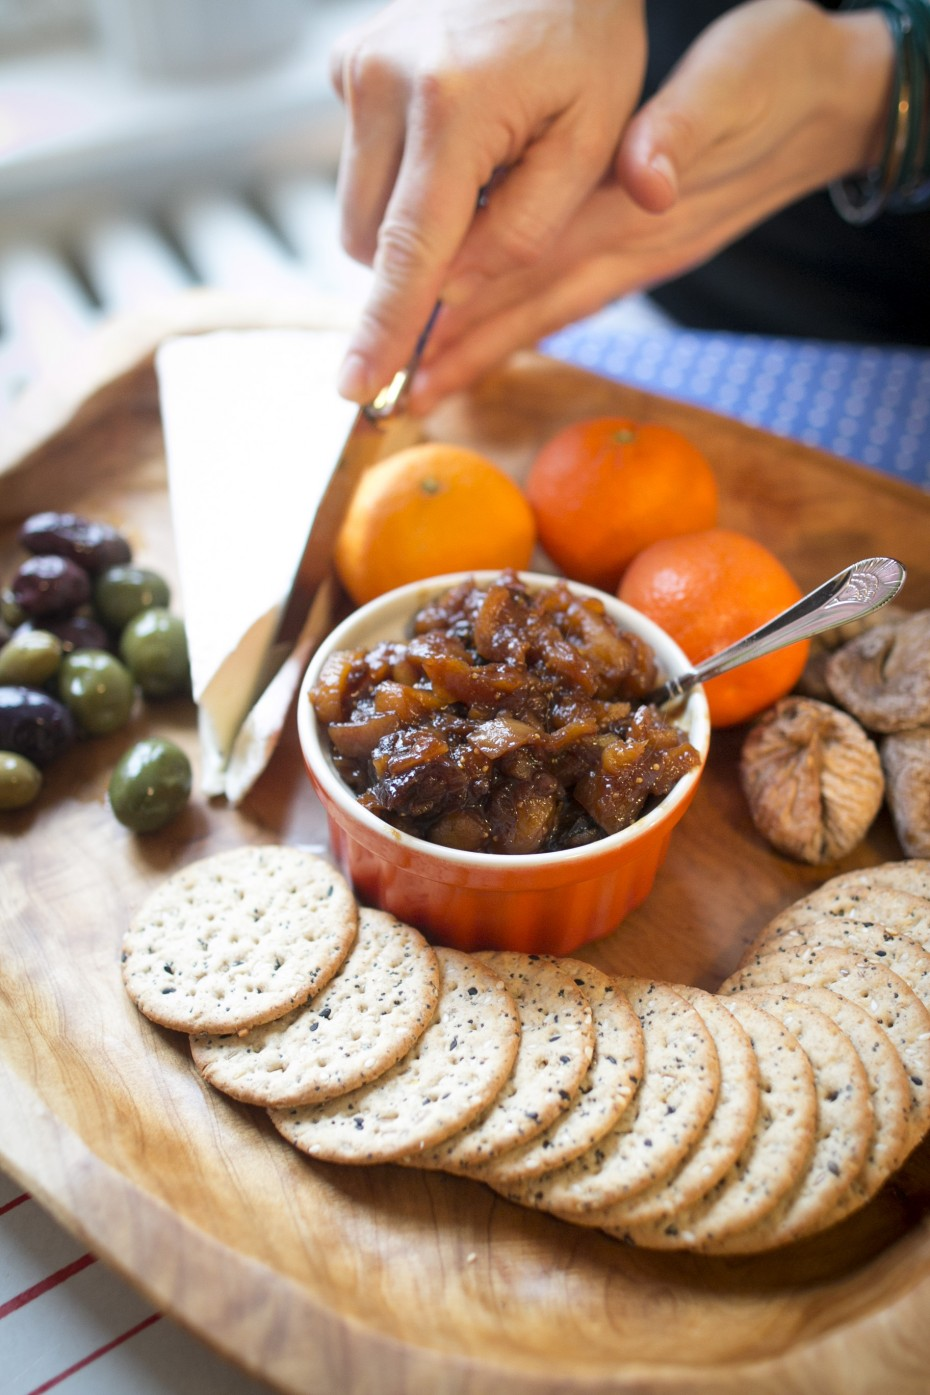 Molasses and Dried Fruit Chutney - Golden Barrel